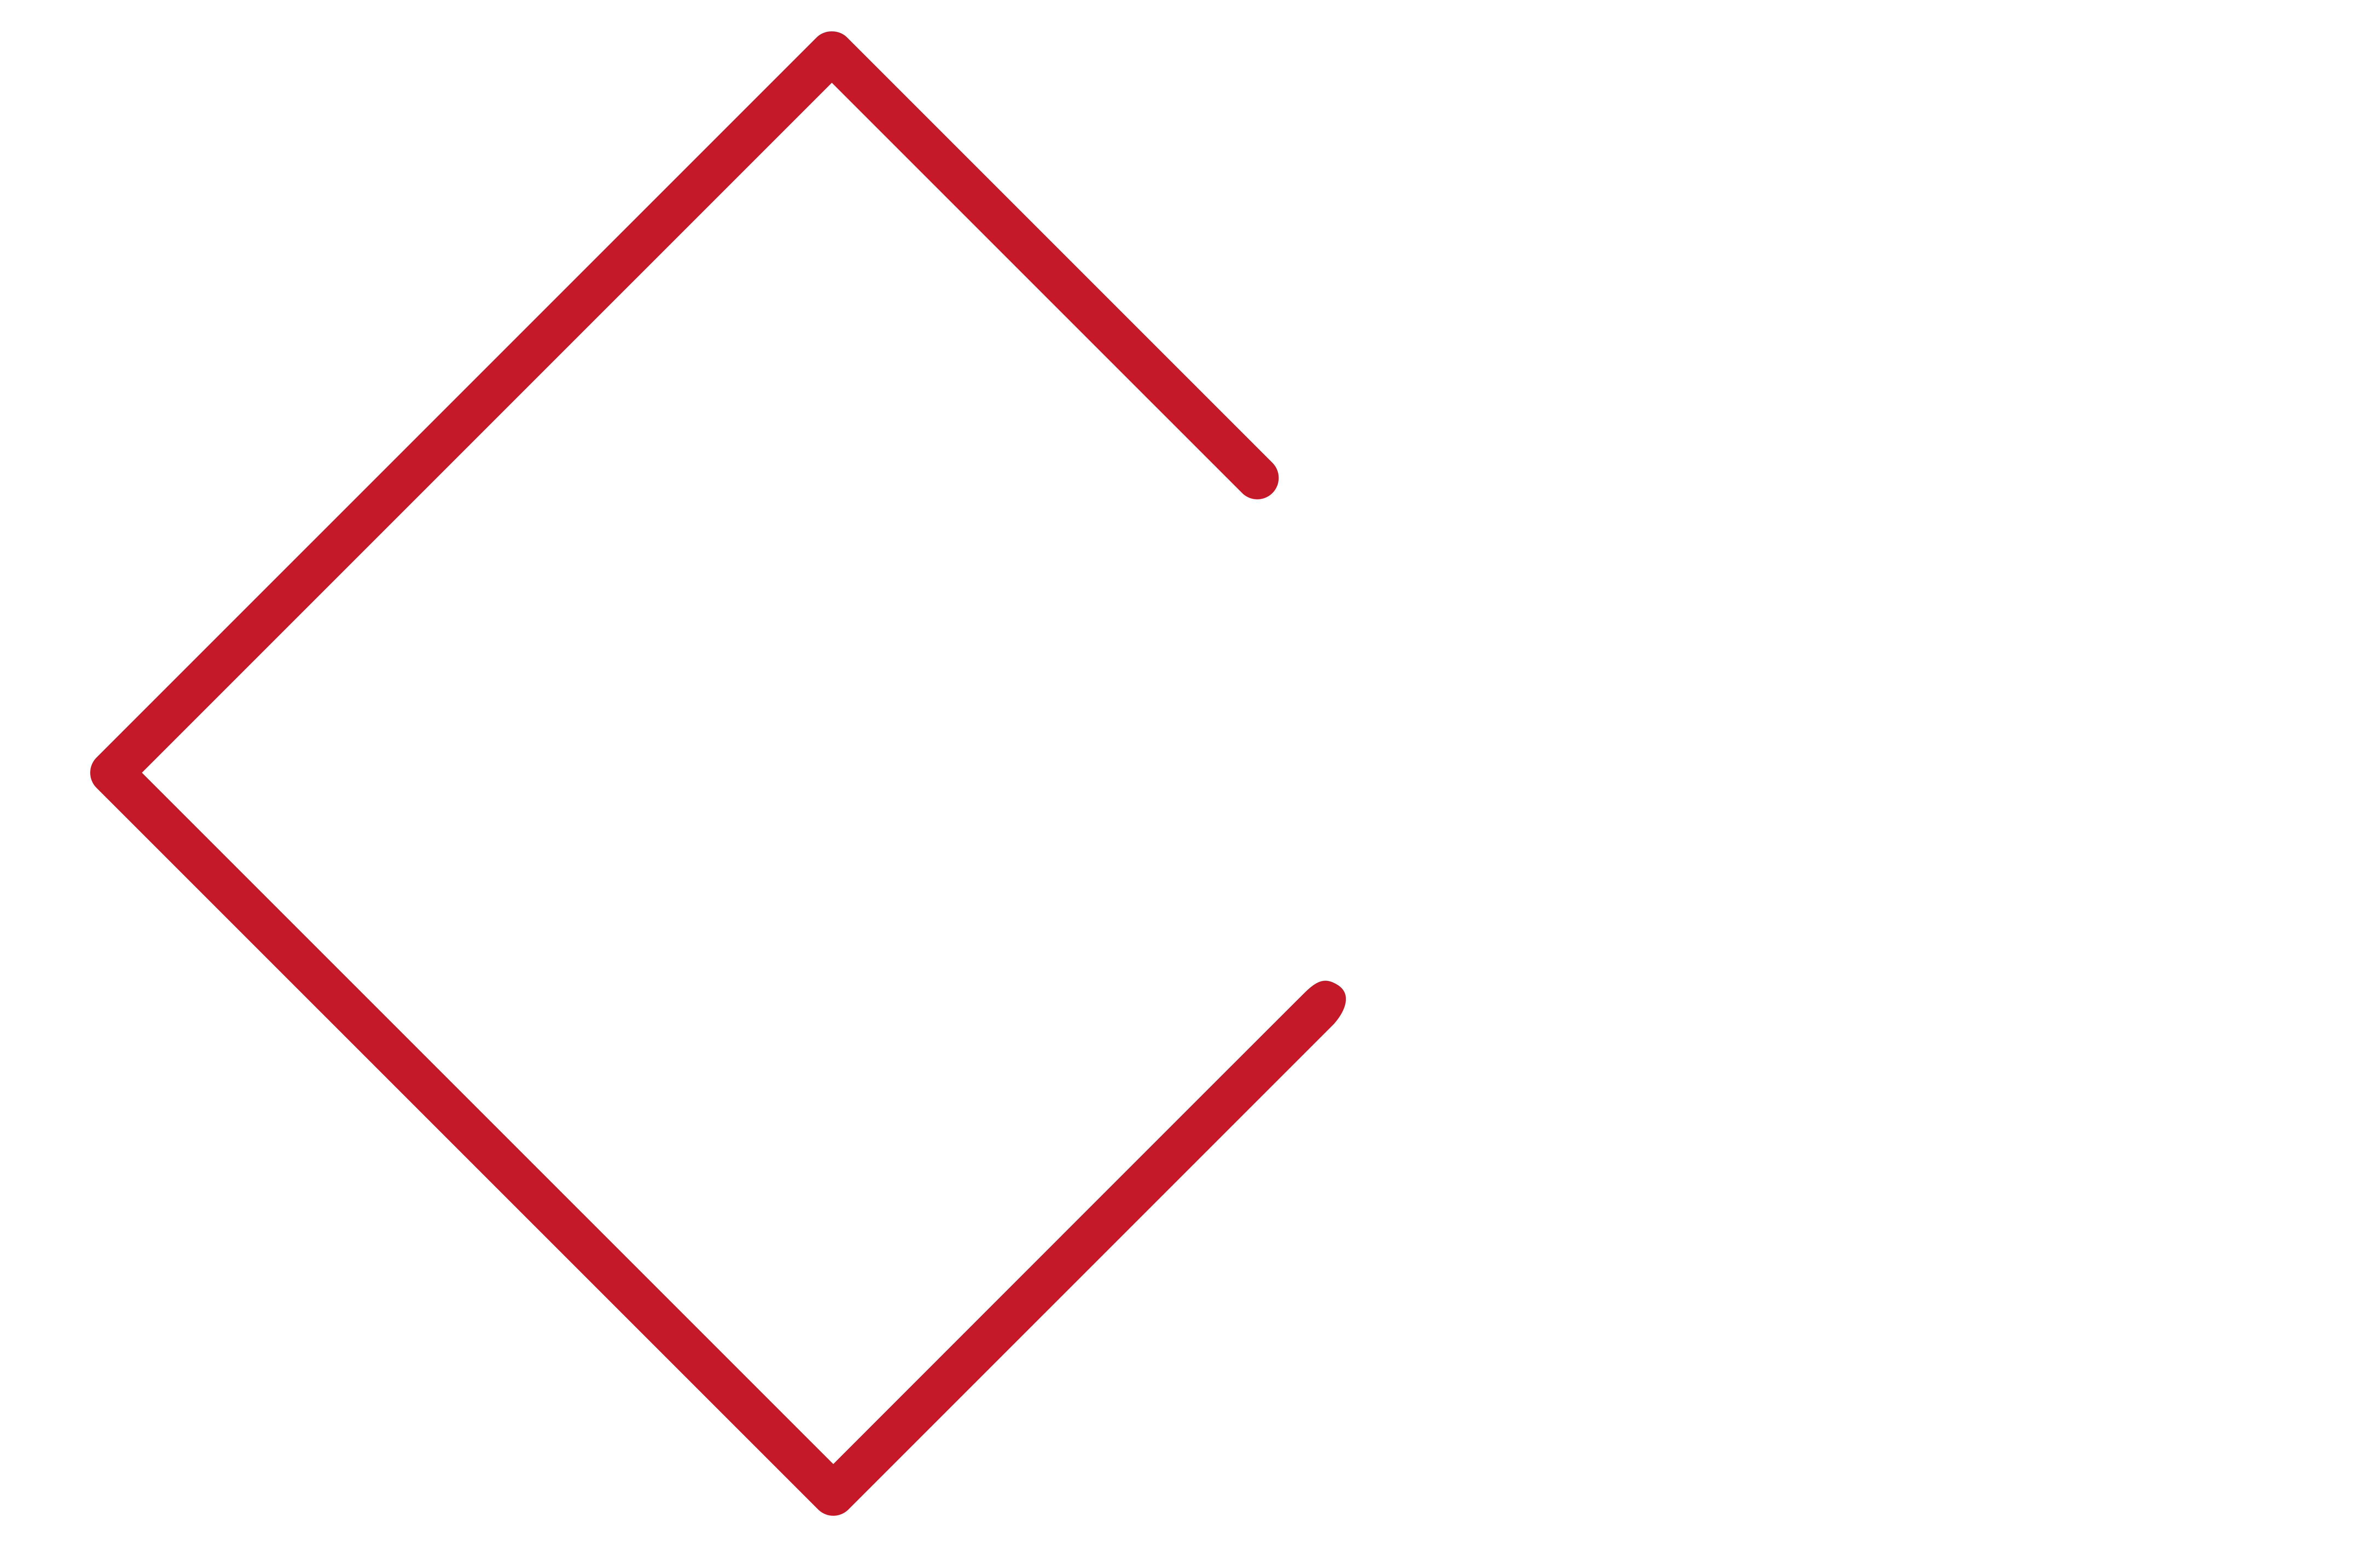 Concierge Real Estate